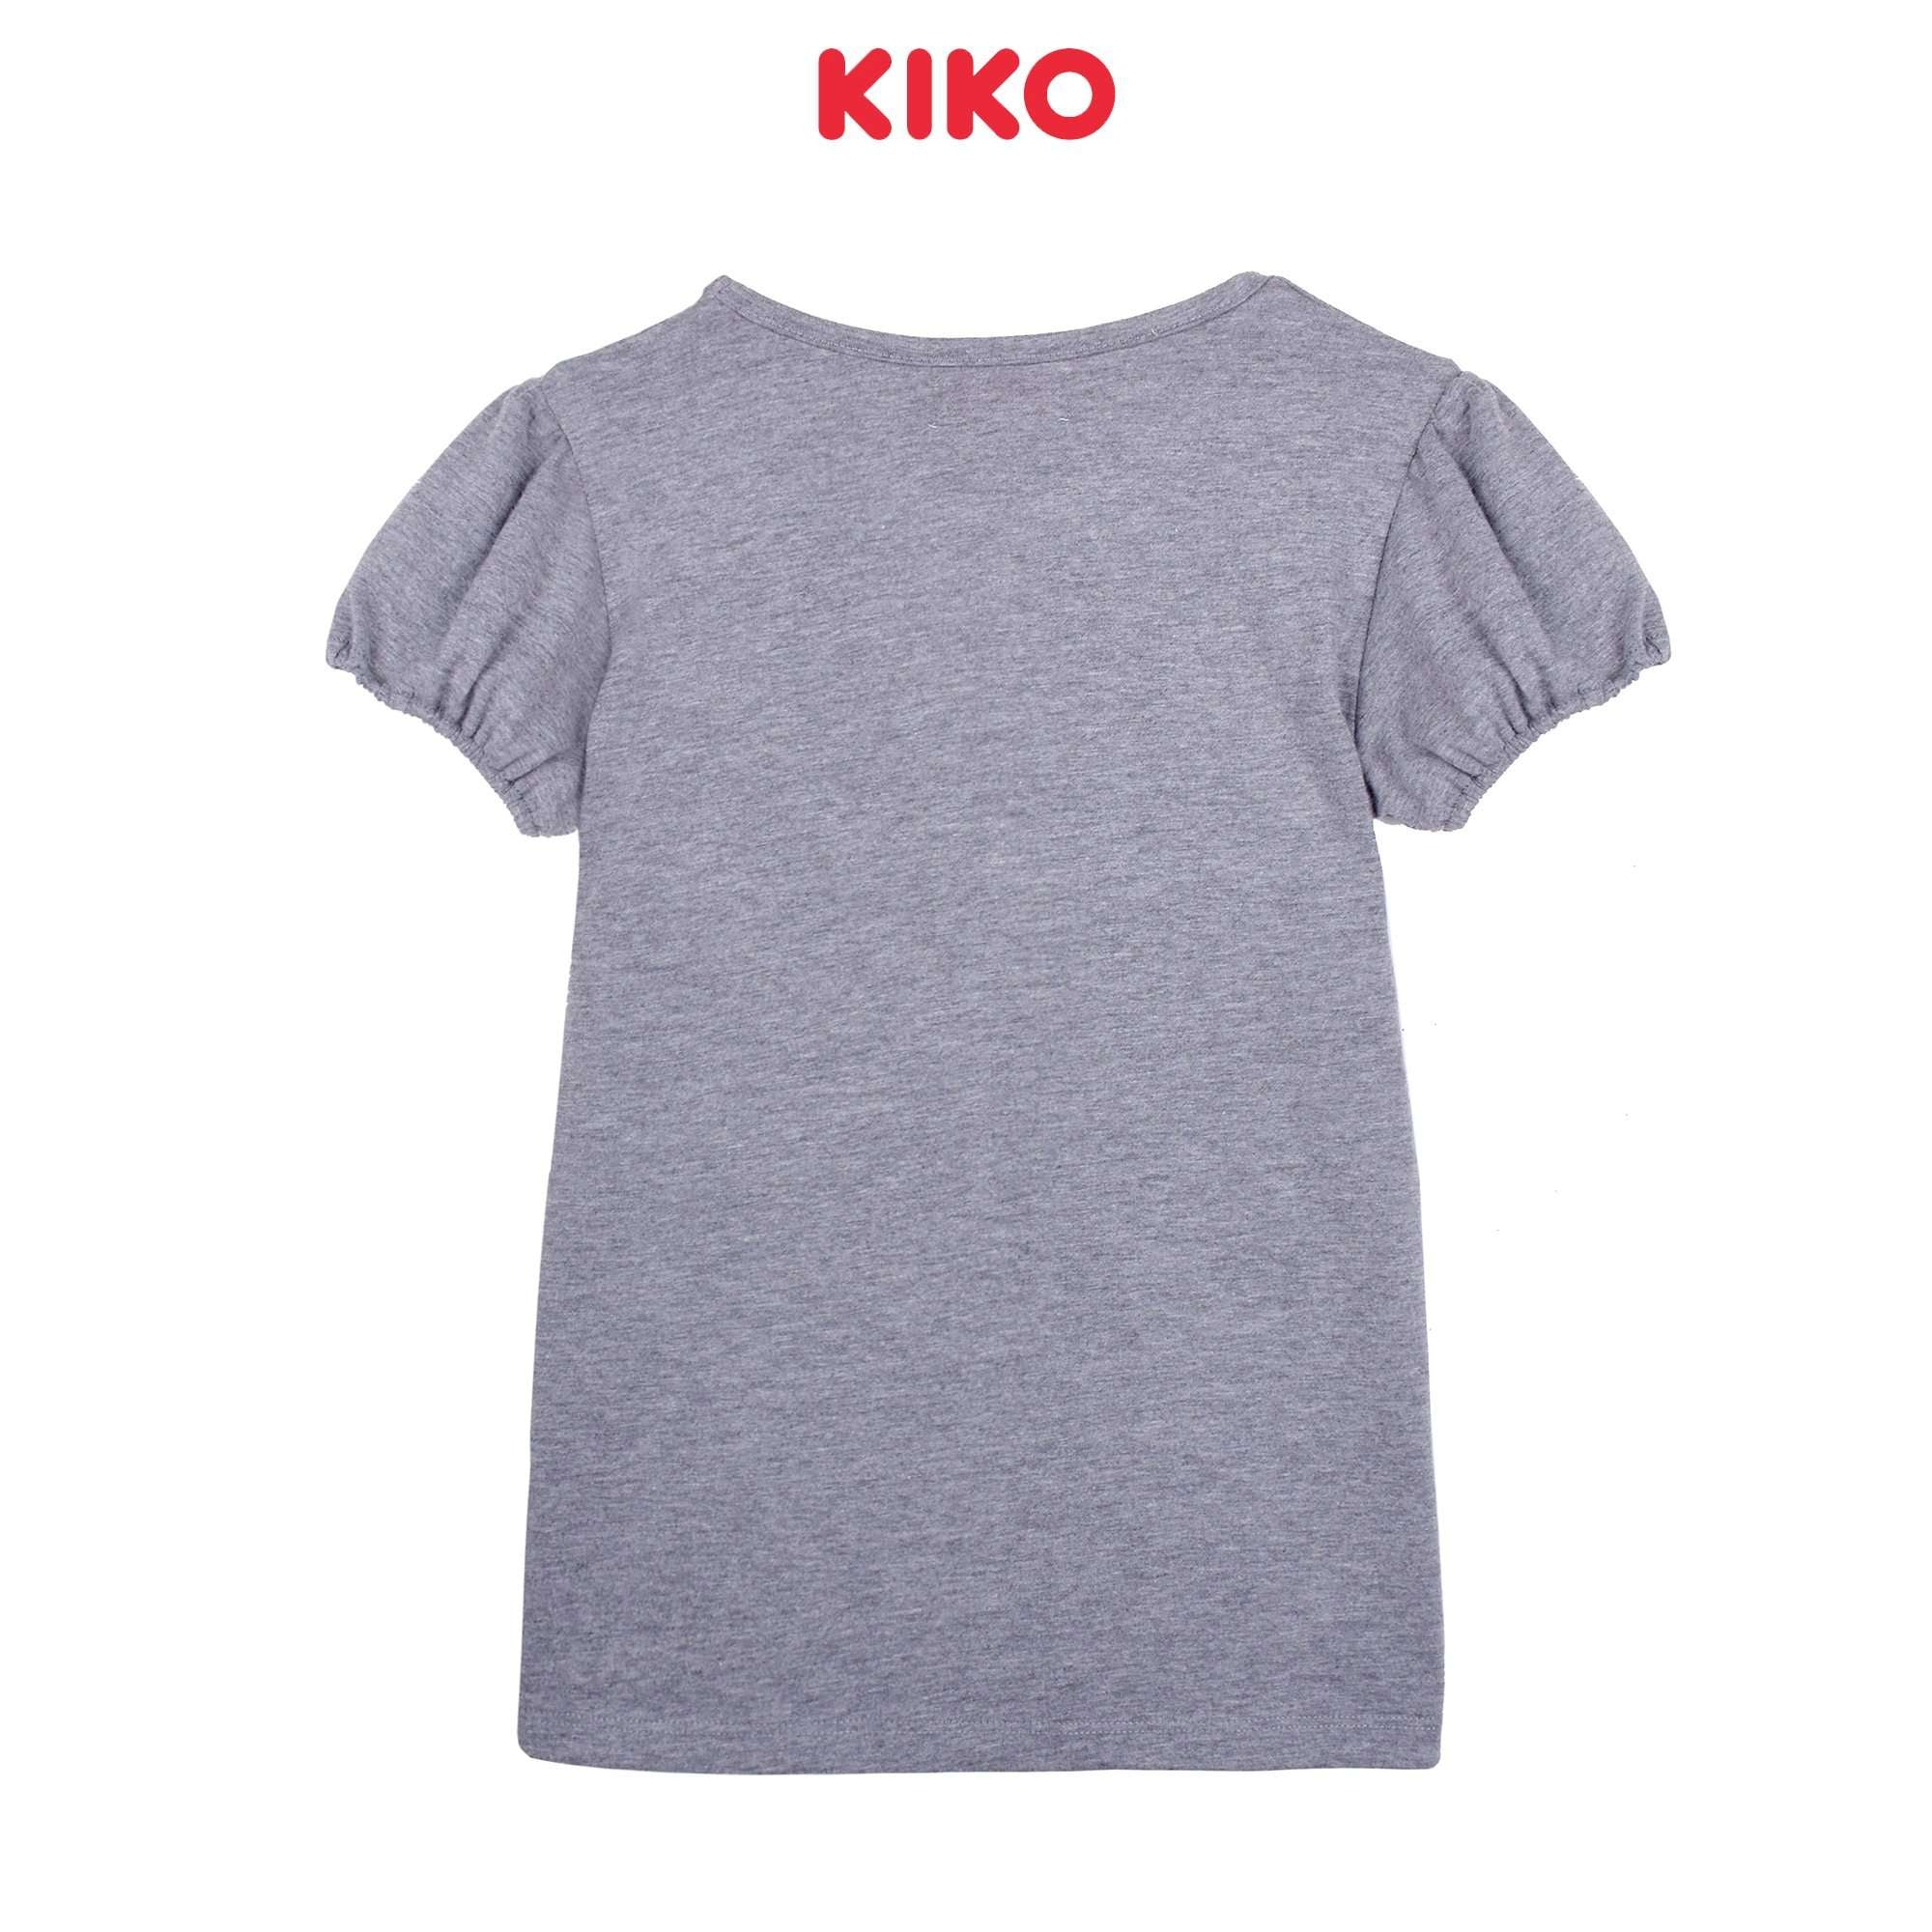 KIKO Girl Short Sleeve Tee - Grey K926103-1145-G5 : Buy KIKO online at CMG.MY